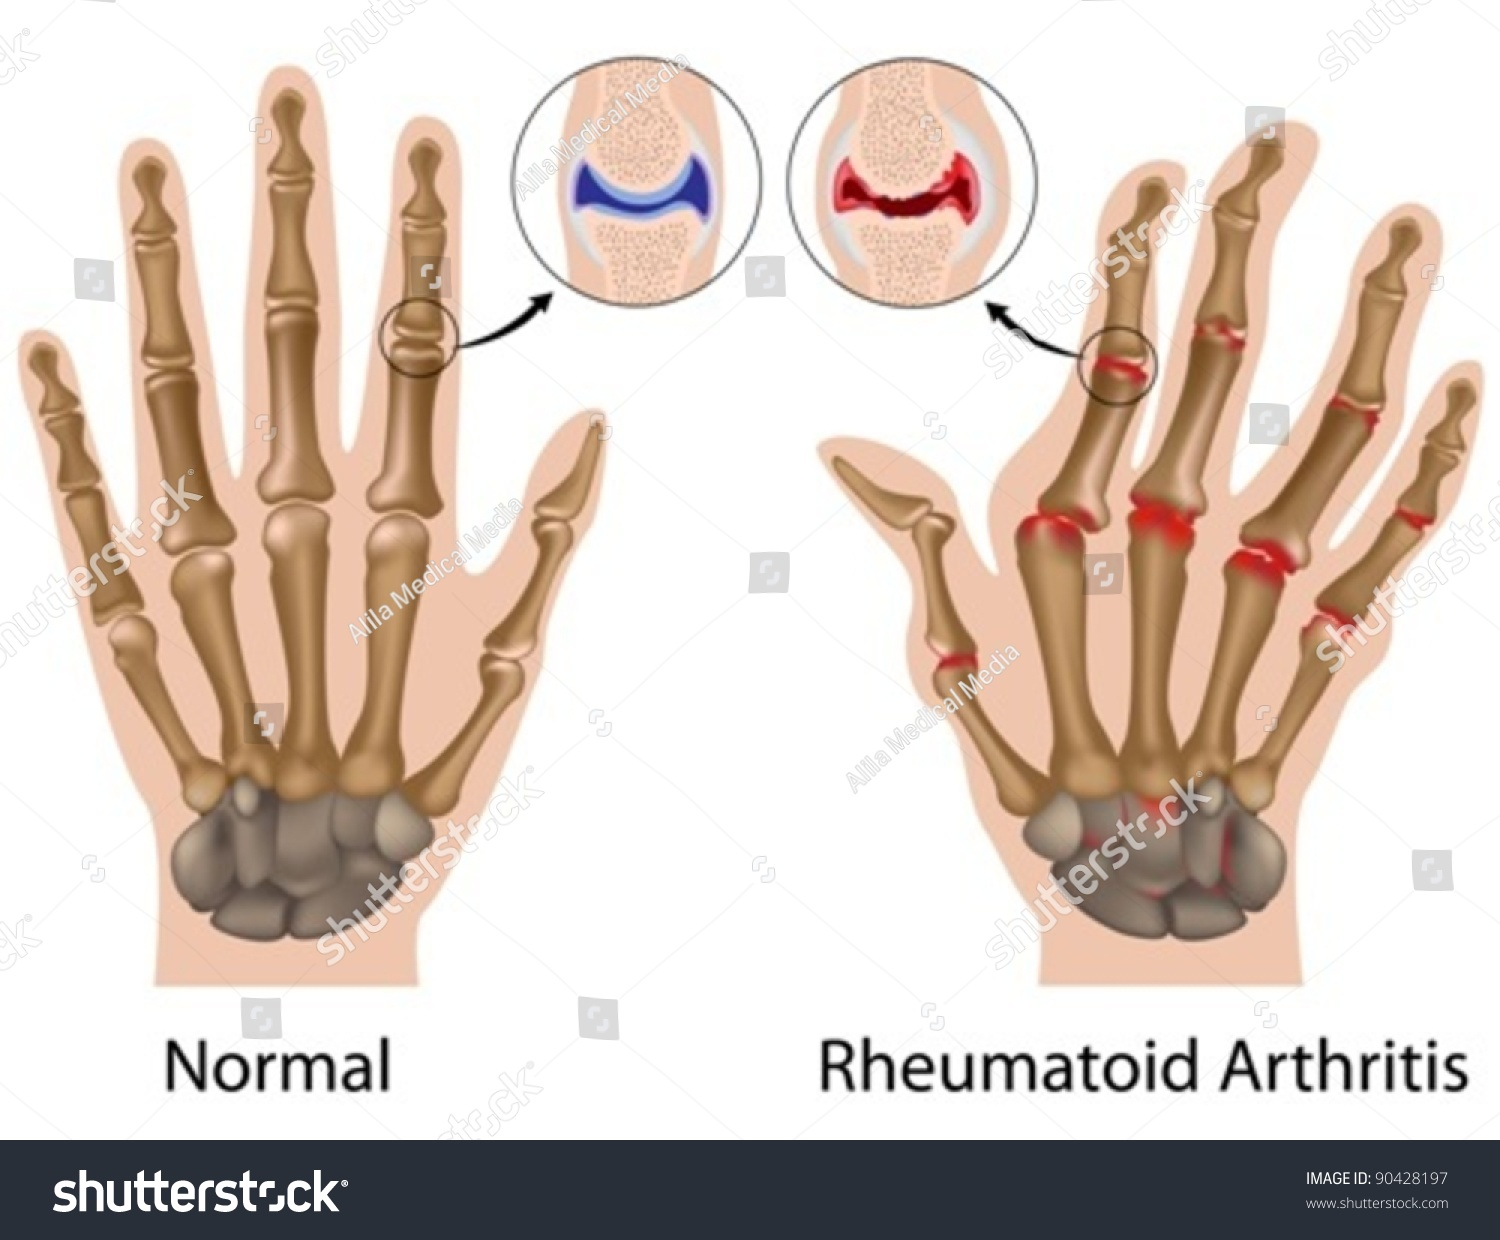 Rheumatoid Arthritis Finger Joint Details Hand Stock Vector (Royalty ...